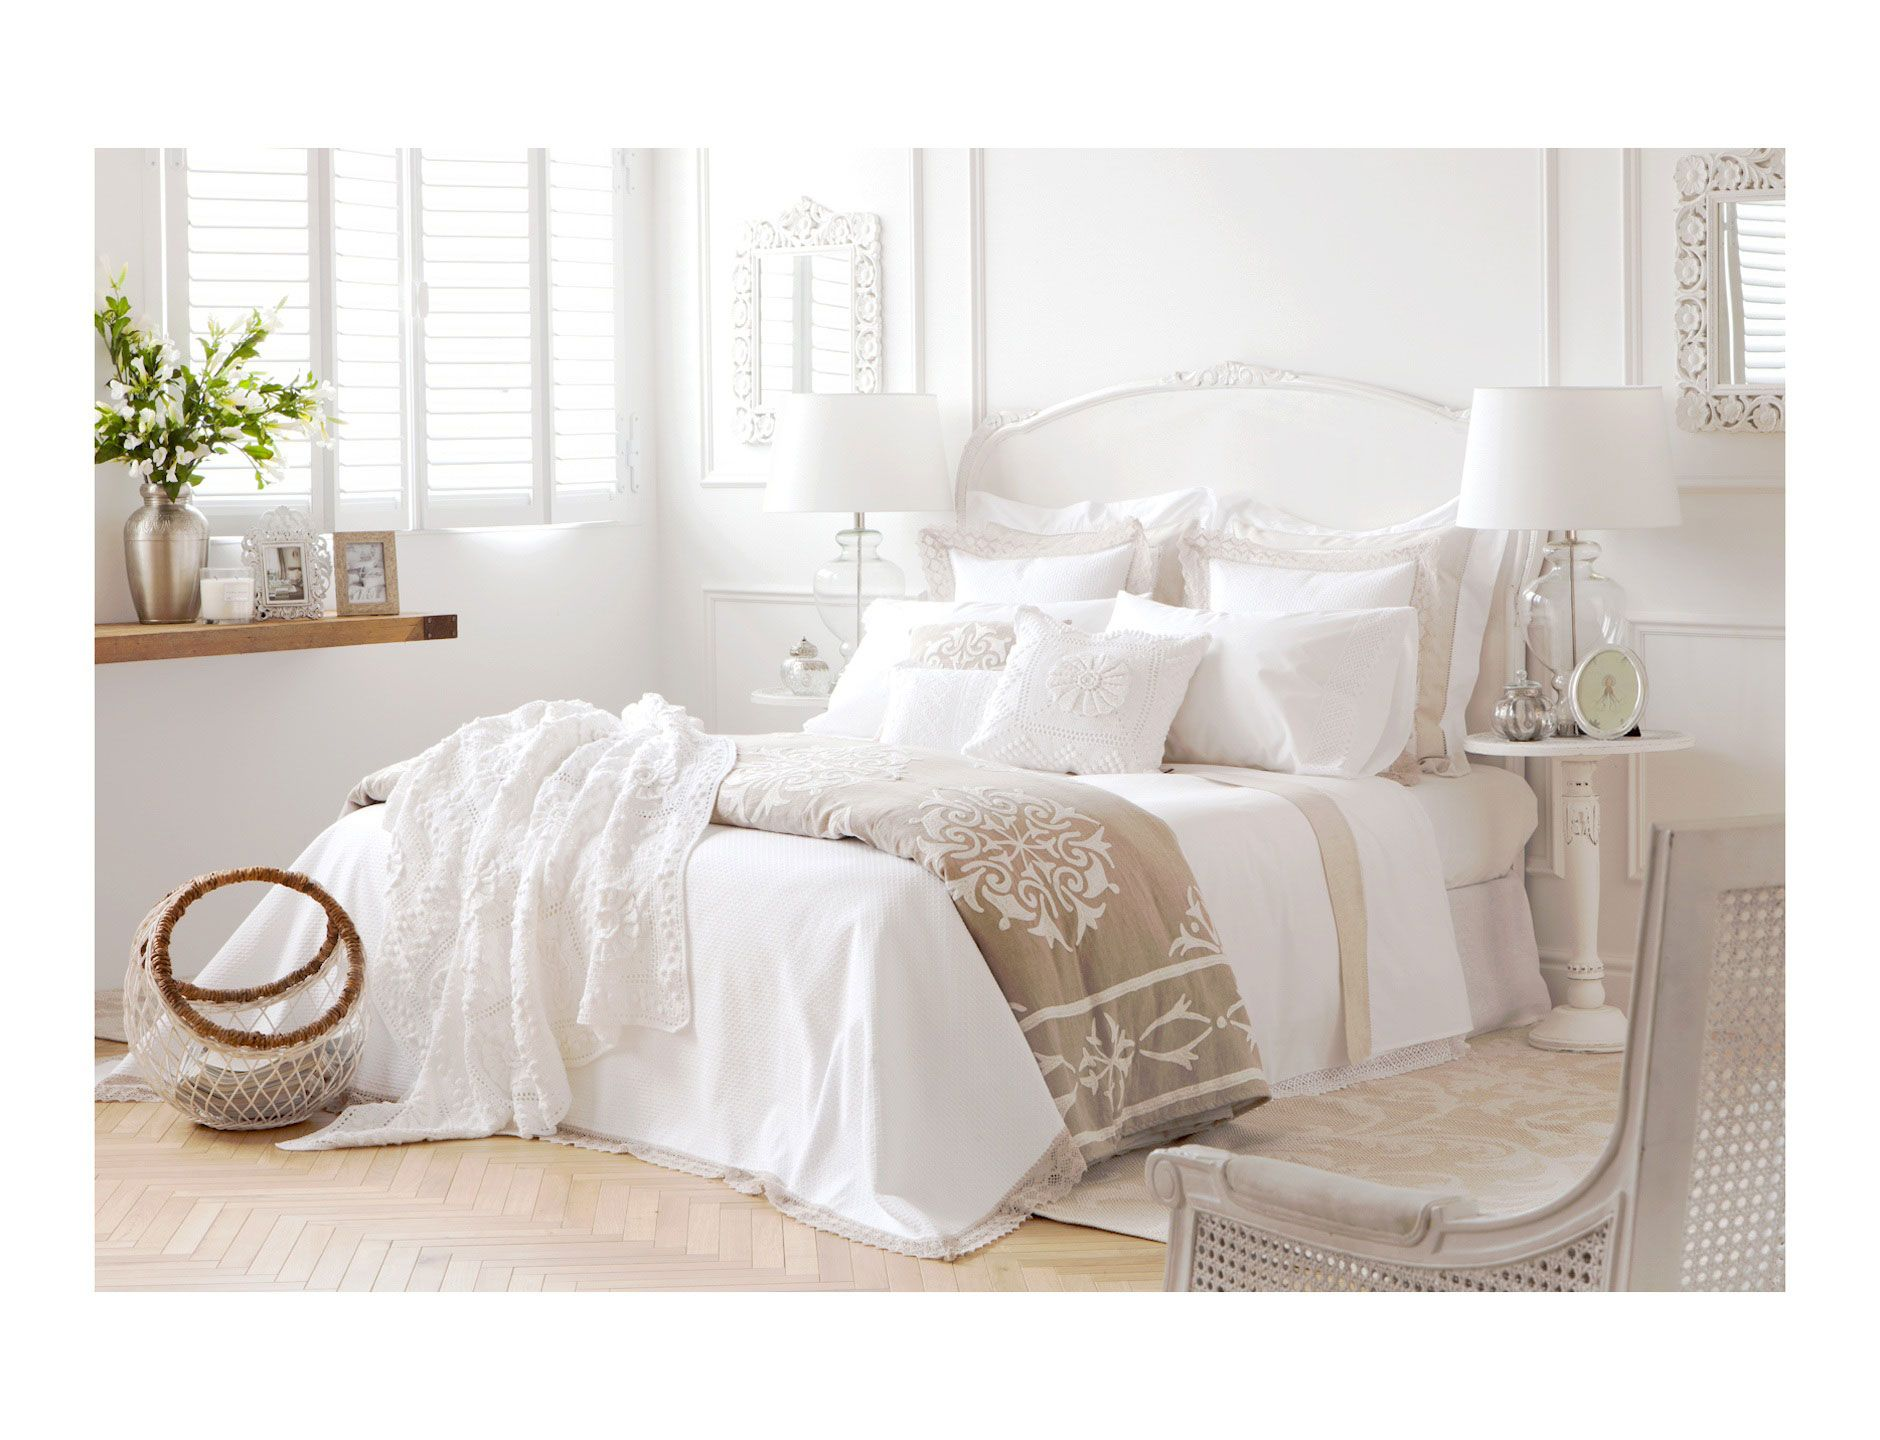 Inspiration zara home france une maison for Chambre zara home